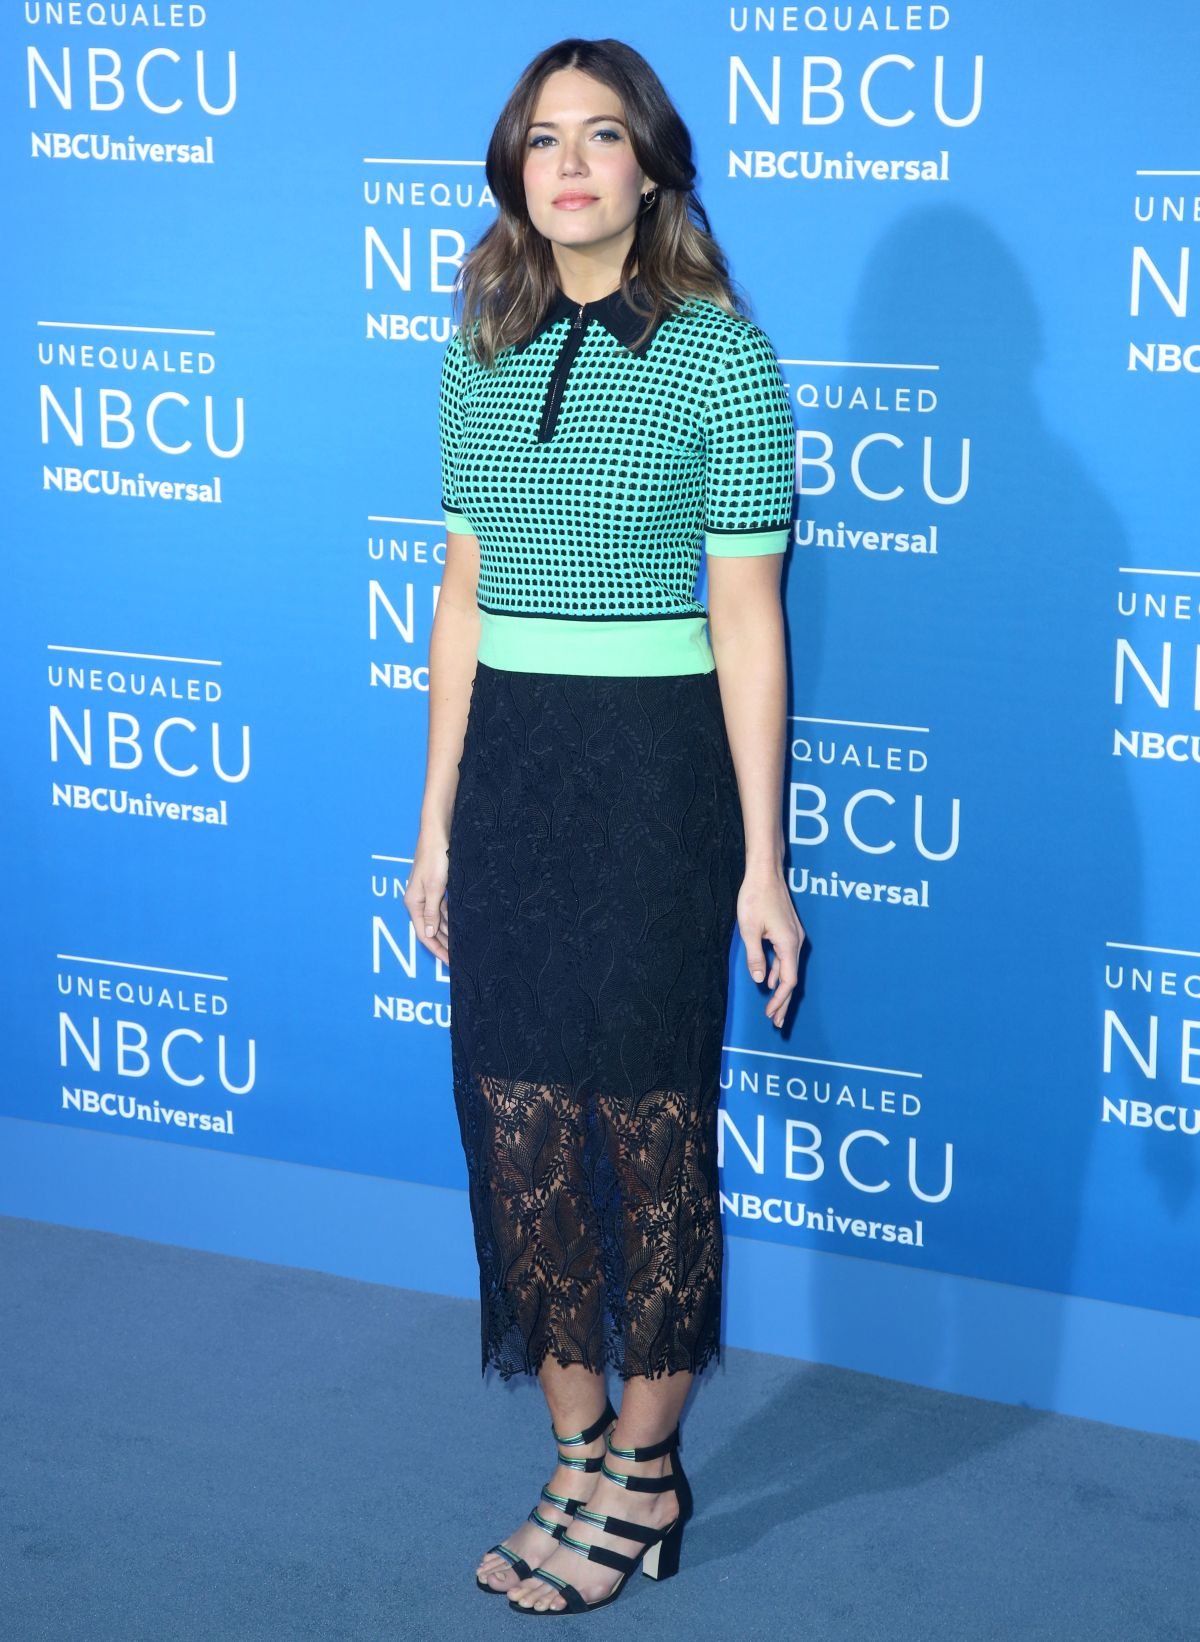 Mandy Moore At NBCUniversal Upfront in New York City   mandy-moore-at-nbcuniversal-upfront-in-new-york-city_13